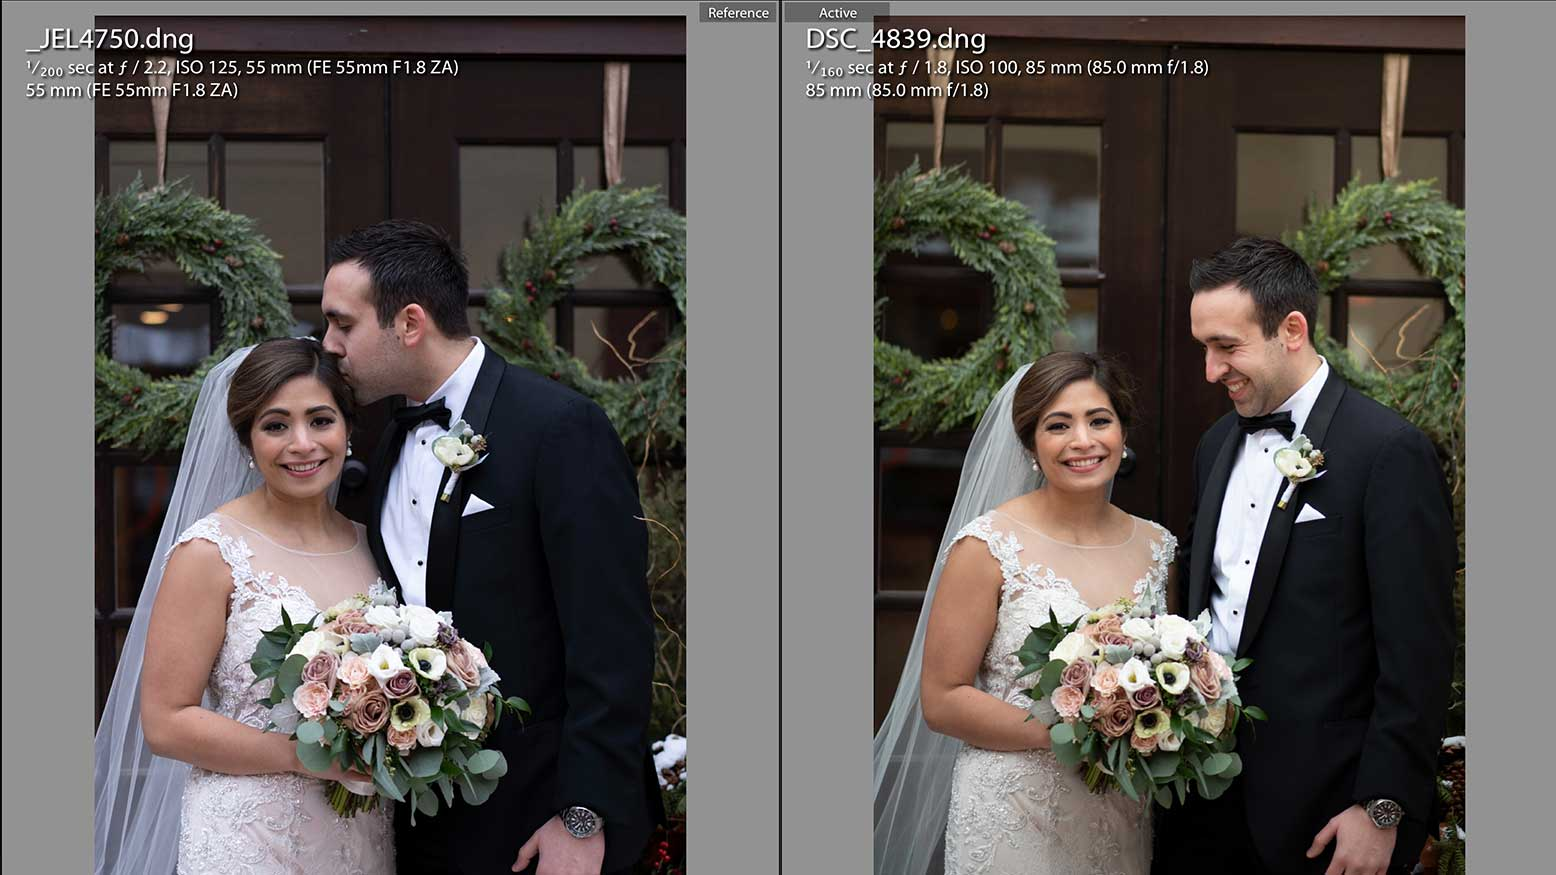 How to Get Consistent Color Between Cameras in Lightroom Classic